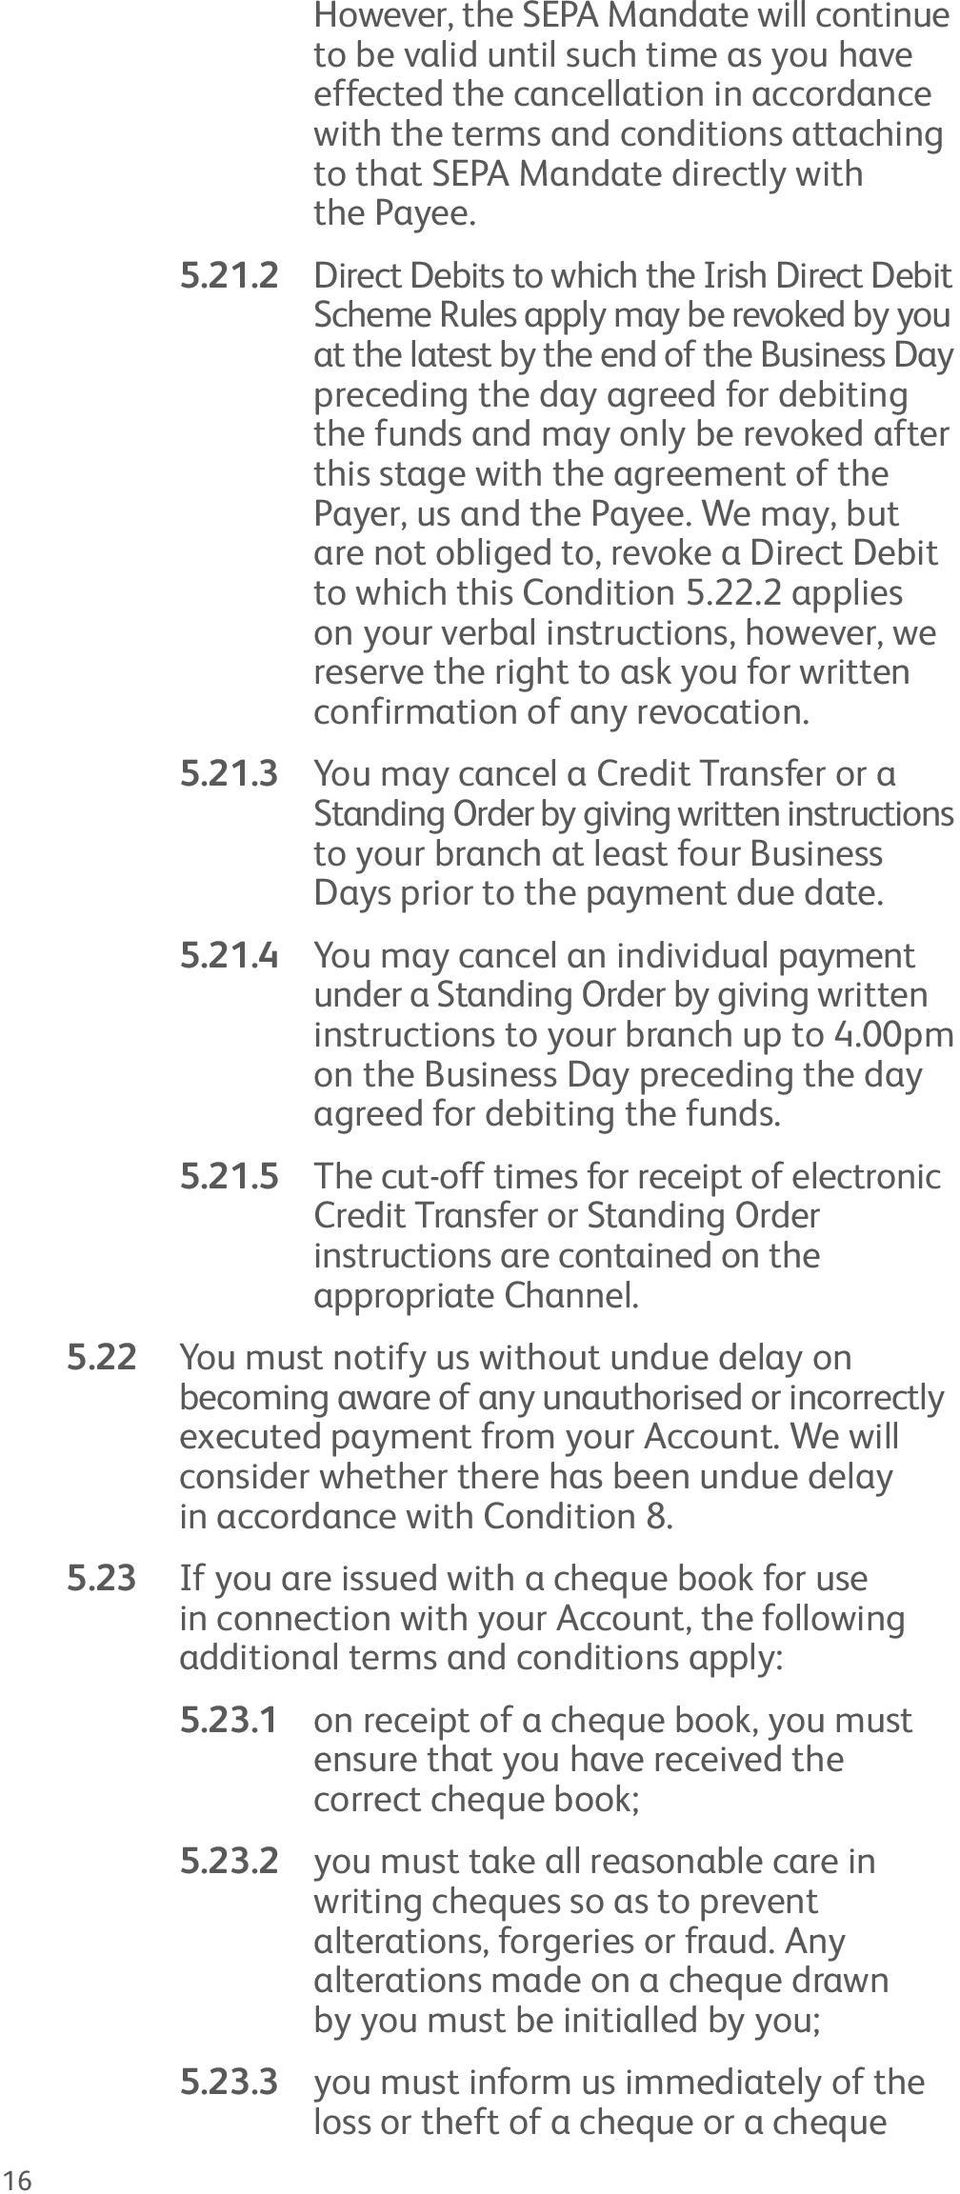 2 Direct Debits to which the Irish Direct Debit Scheme Rules apply may be revoked by you at the latest by the end of the Business Day preceding the day agreed for debiting the funds and may only be